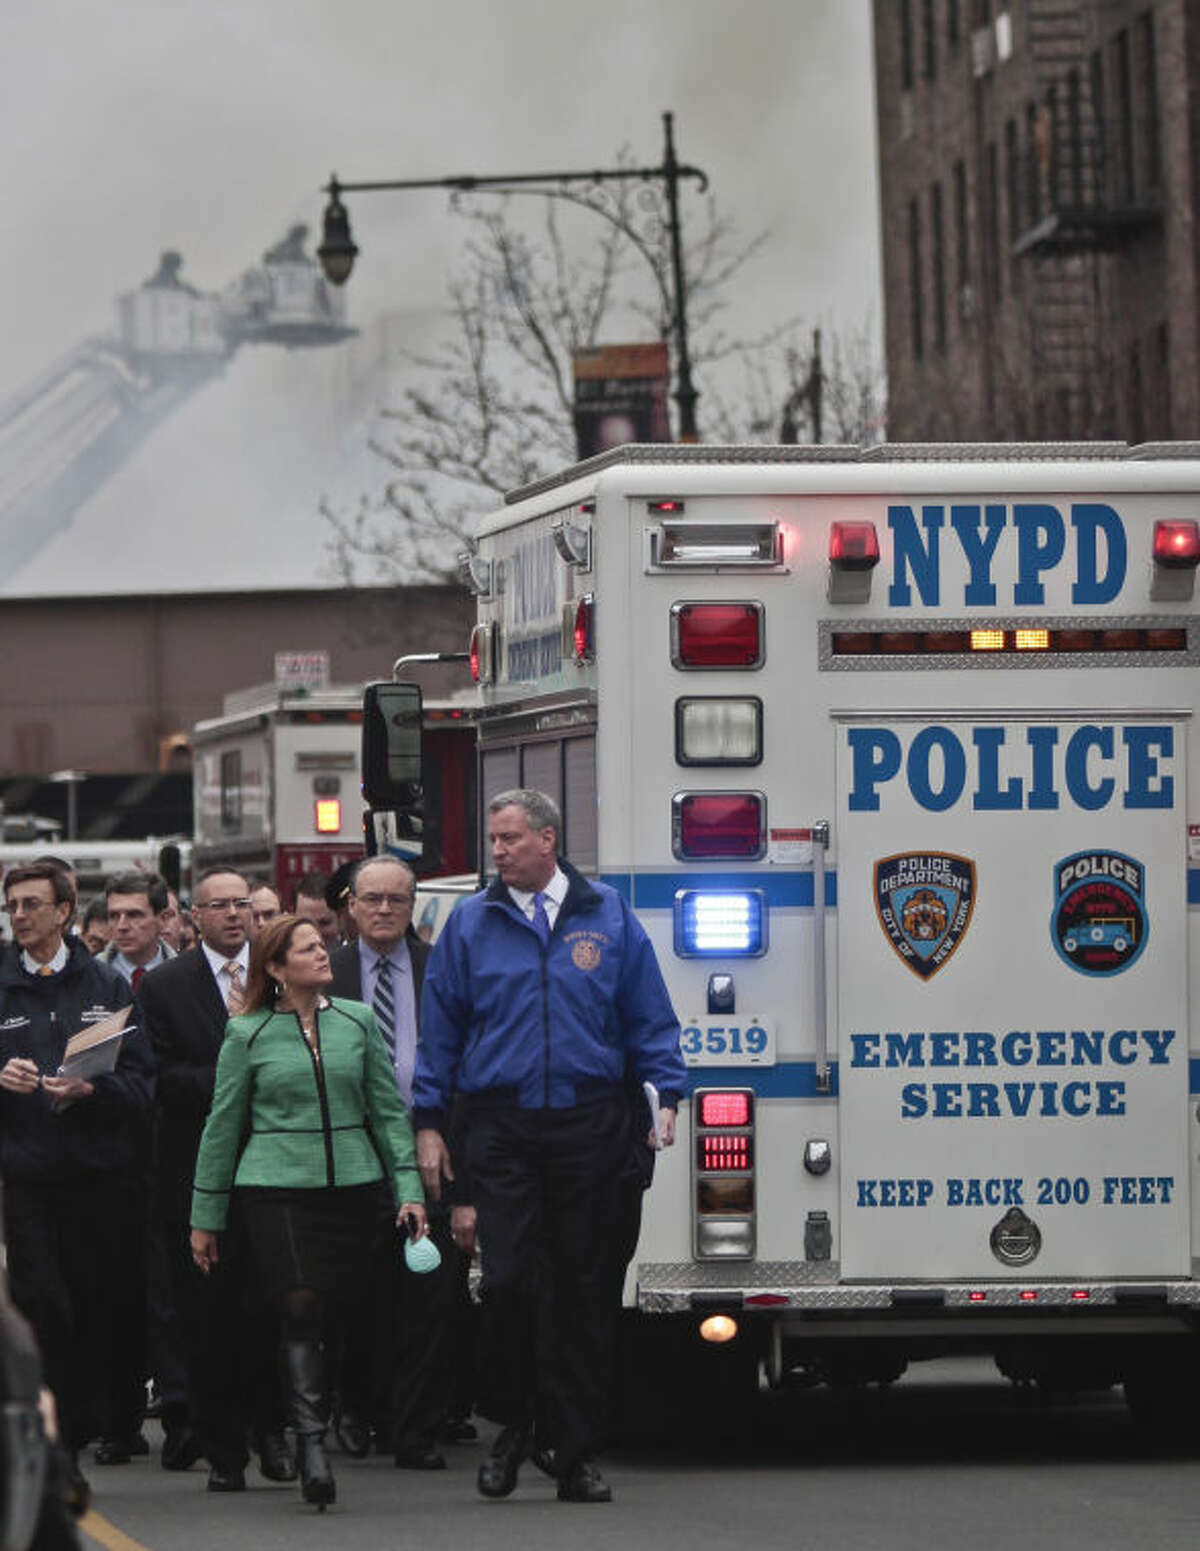 New York city council speaker Melissa Mark-Viverito, center, and New York Mayor Bill de Blasio, right, lead a group of city officials to a news conference after visiting the site of an explosion that leveled two apartment buildings in Harlem, Wednesday March 12, 2014 in New York. (AP Photo/Bebeto Matthews)